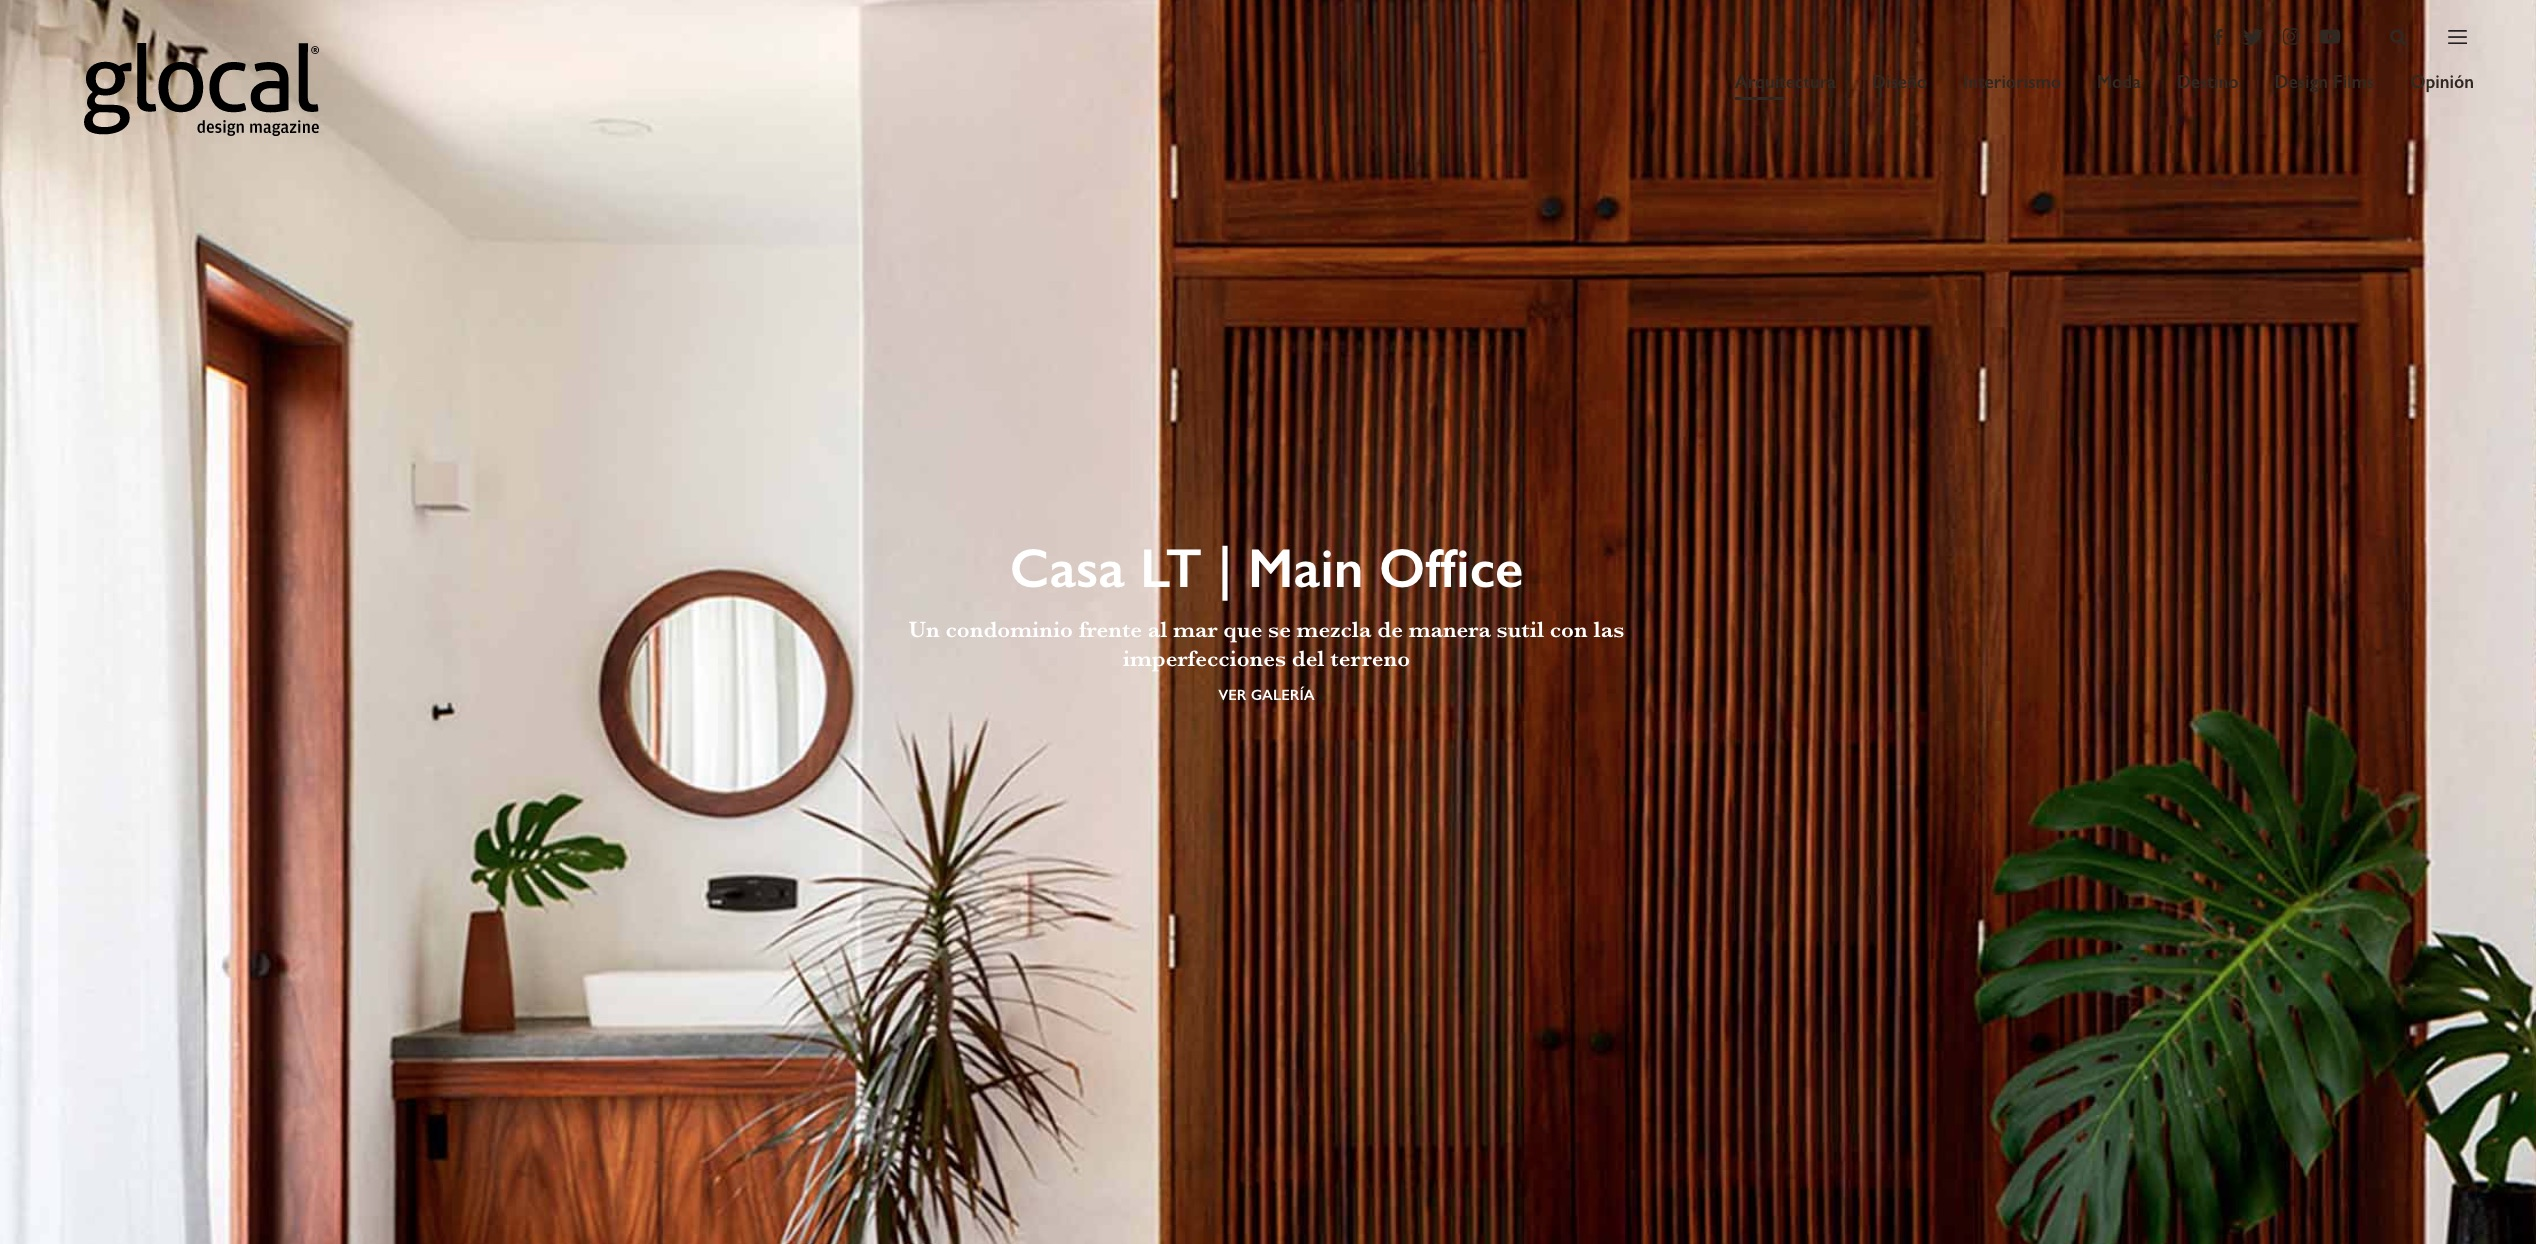 glocal design magazine article about Main Office project Casa Linda Theresia LT